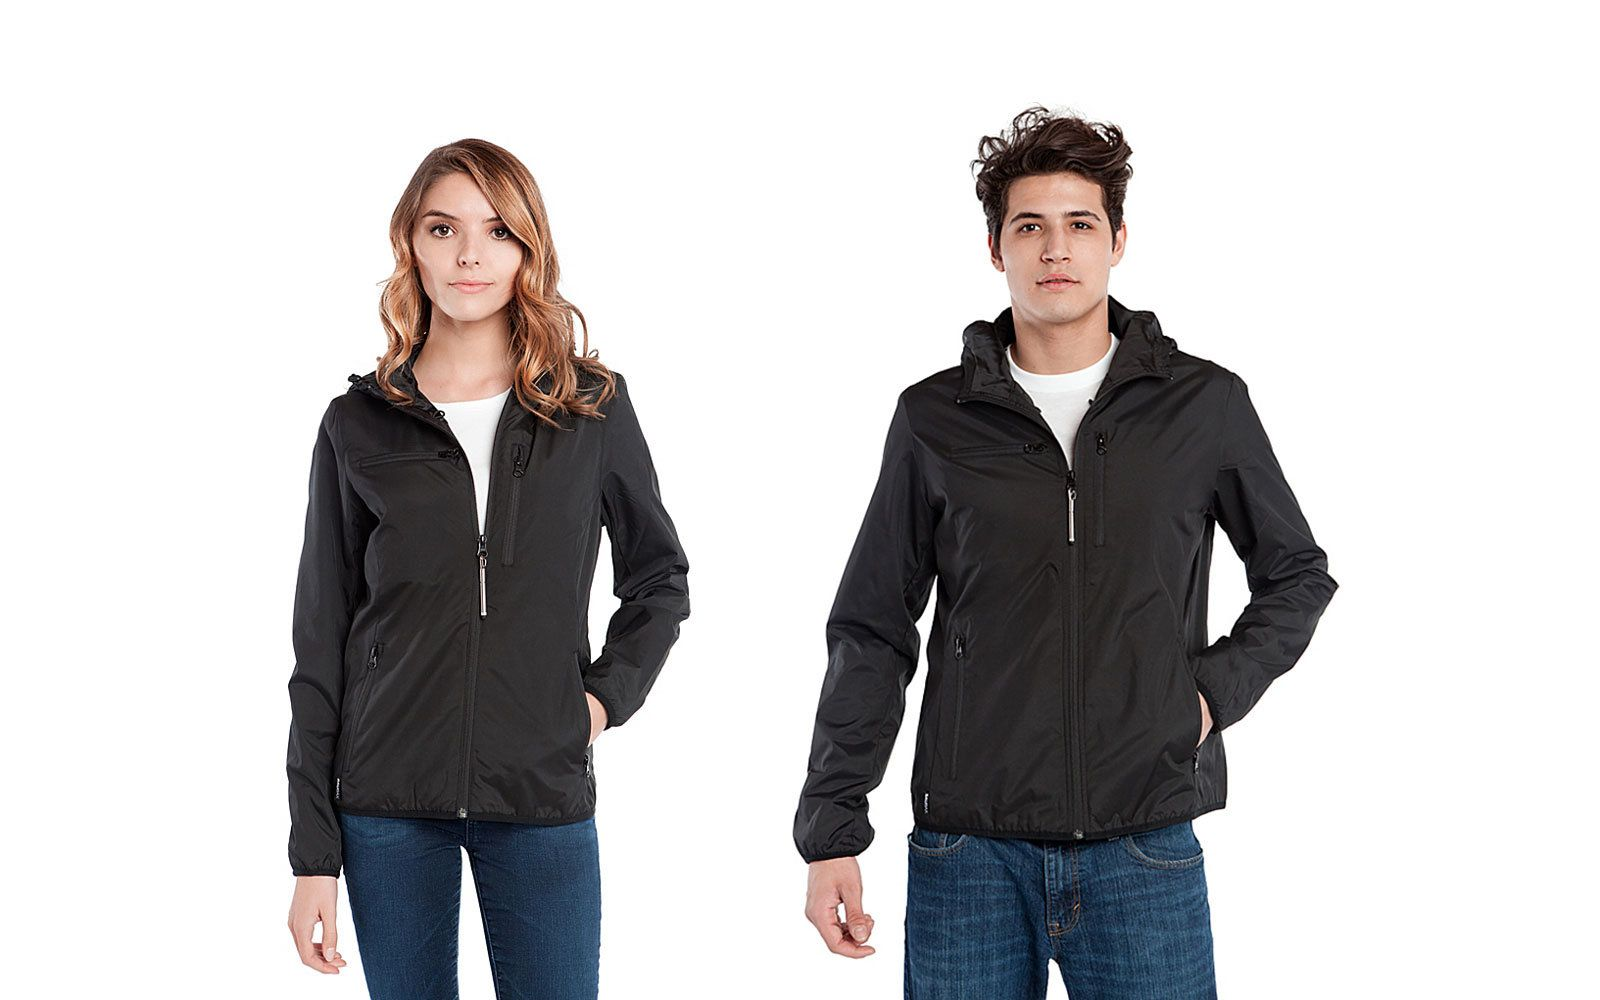 5c4b3eb49 10 Travel Jackets That Aren't a Pain to Pack | These easy-to-pack picks for  men and women are lightweight but super warm.